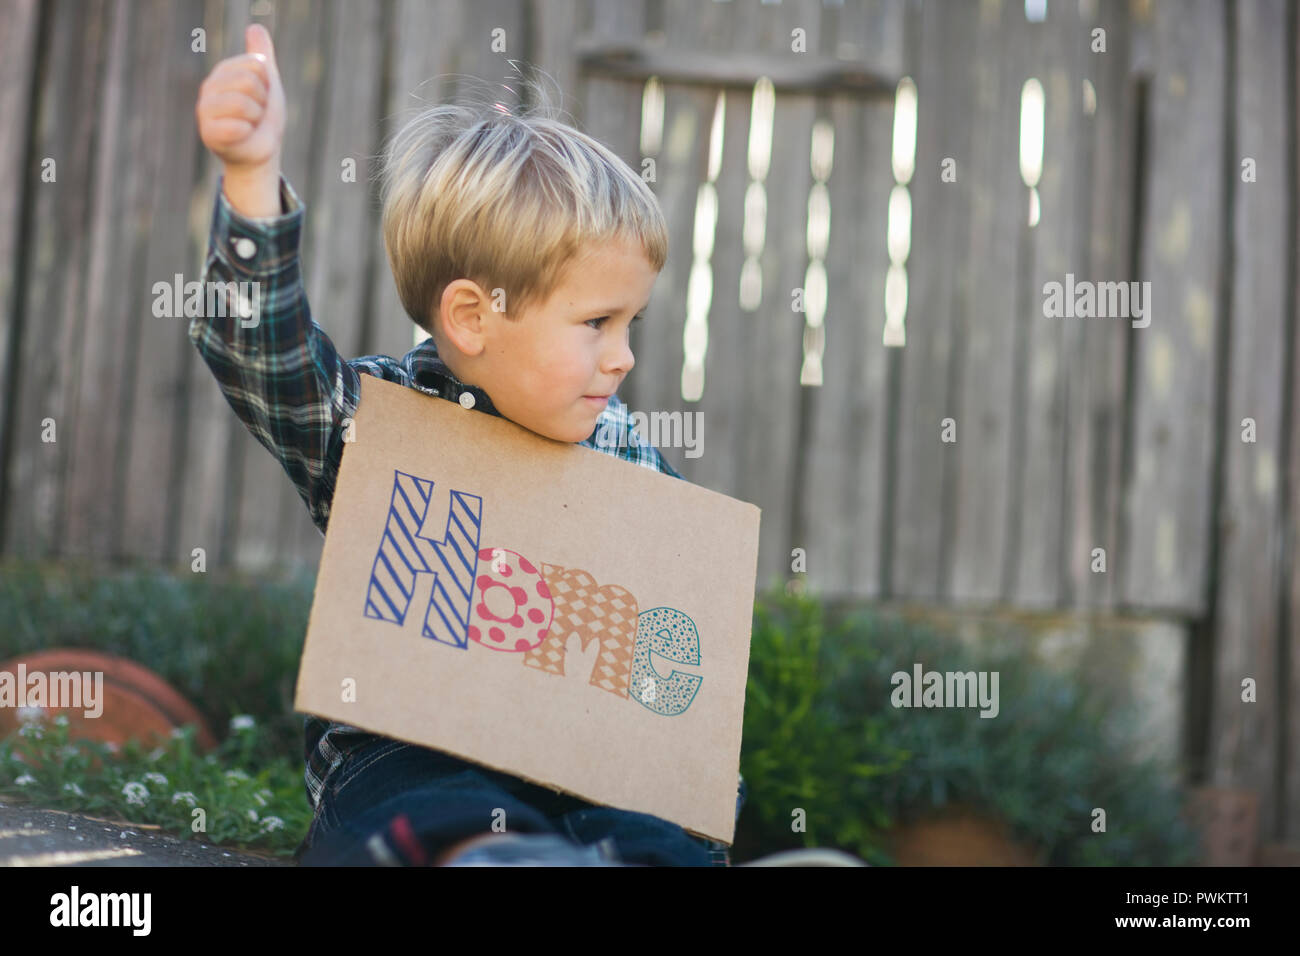 Young boy pretending to hitchhike. - Stock Image